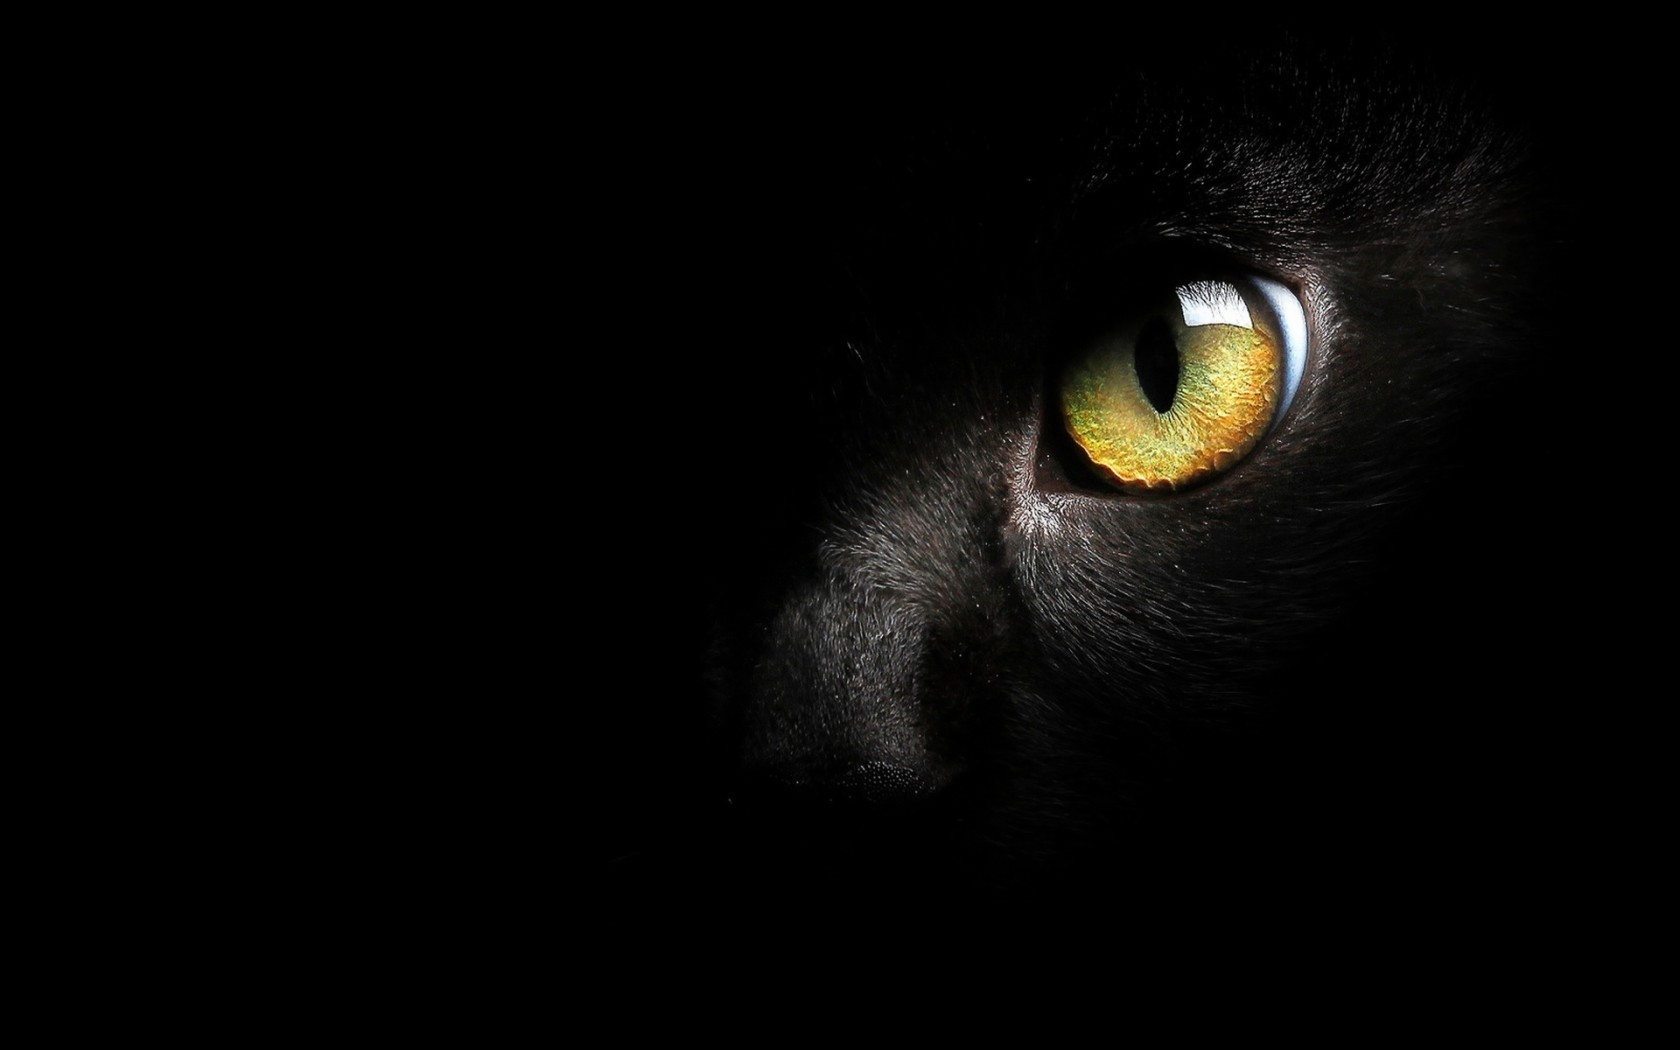 Free Download Black Cat Wallpaper High Quality Black Cat Wallpapers 1680x1050 For Your Desktop Mobile Tablet Explore 73 Black Cat Wallpapers Black Kitten Wallpaper Kitten Wallpaper For Desktop Cat